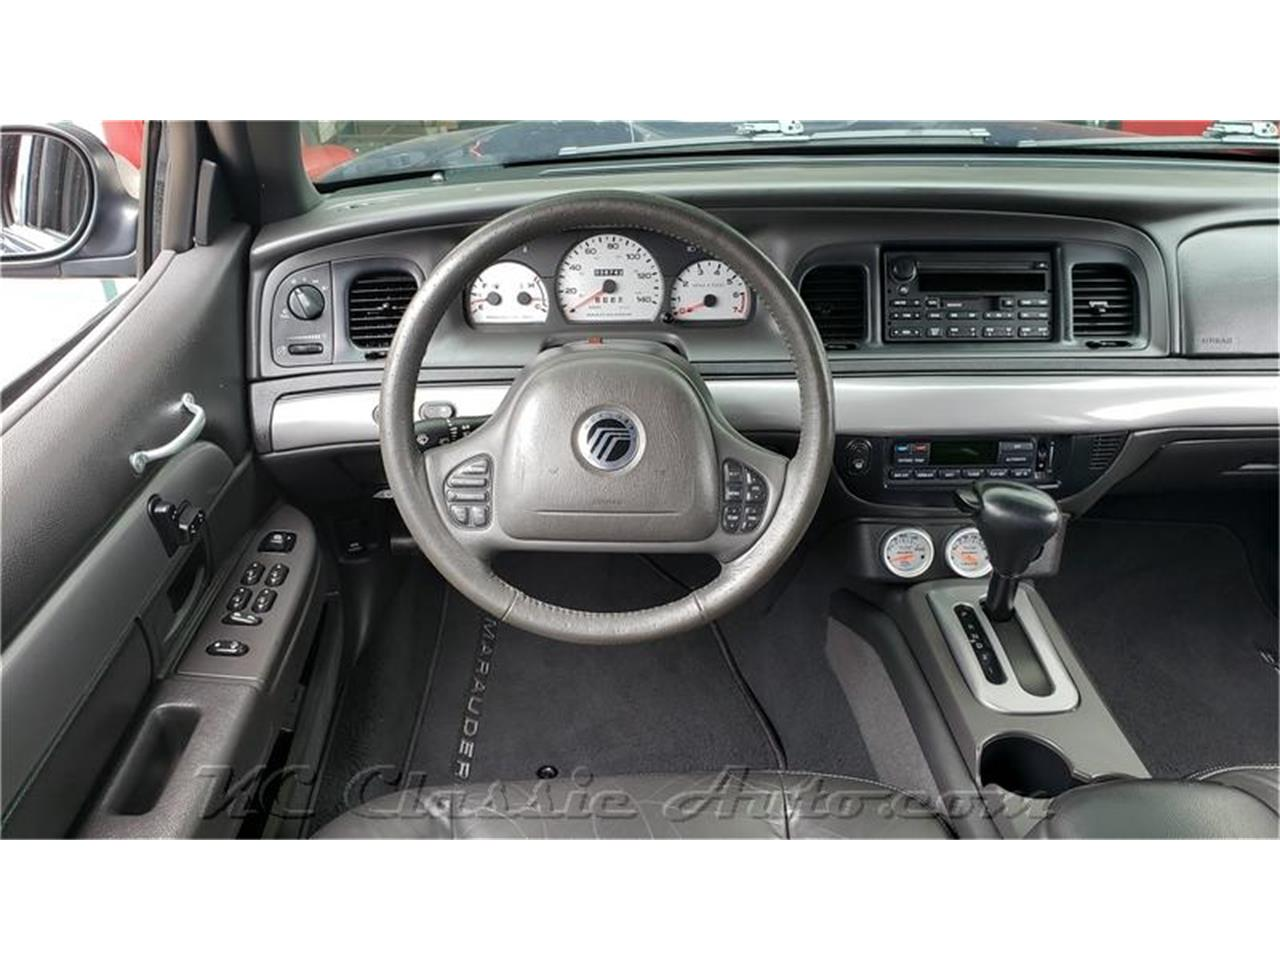 2003 Mercury Marauder for sale in Lenexa, KS – photo 9